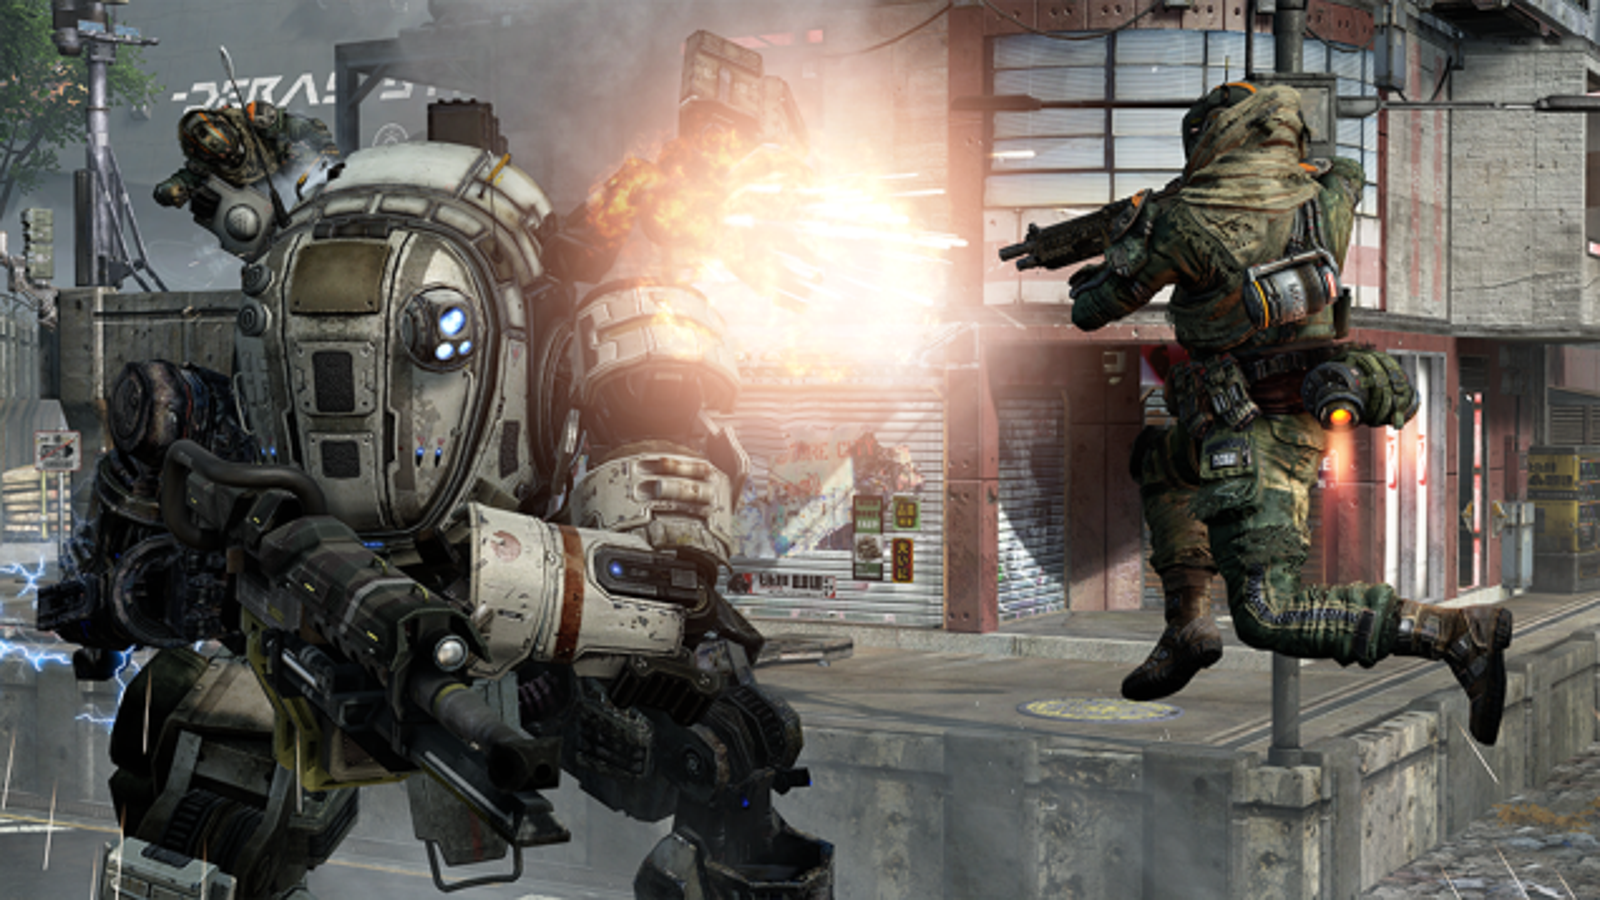 Titanfall - Respawn Updates Community on Matchmaking Issues